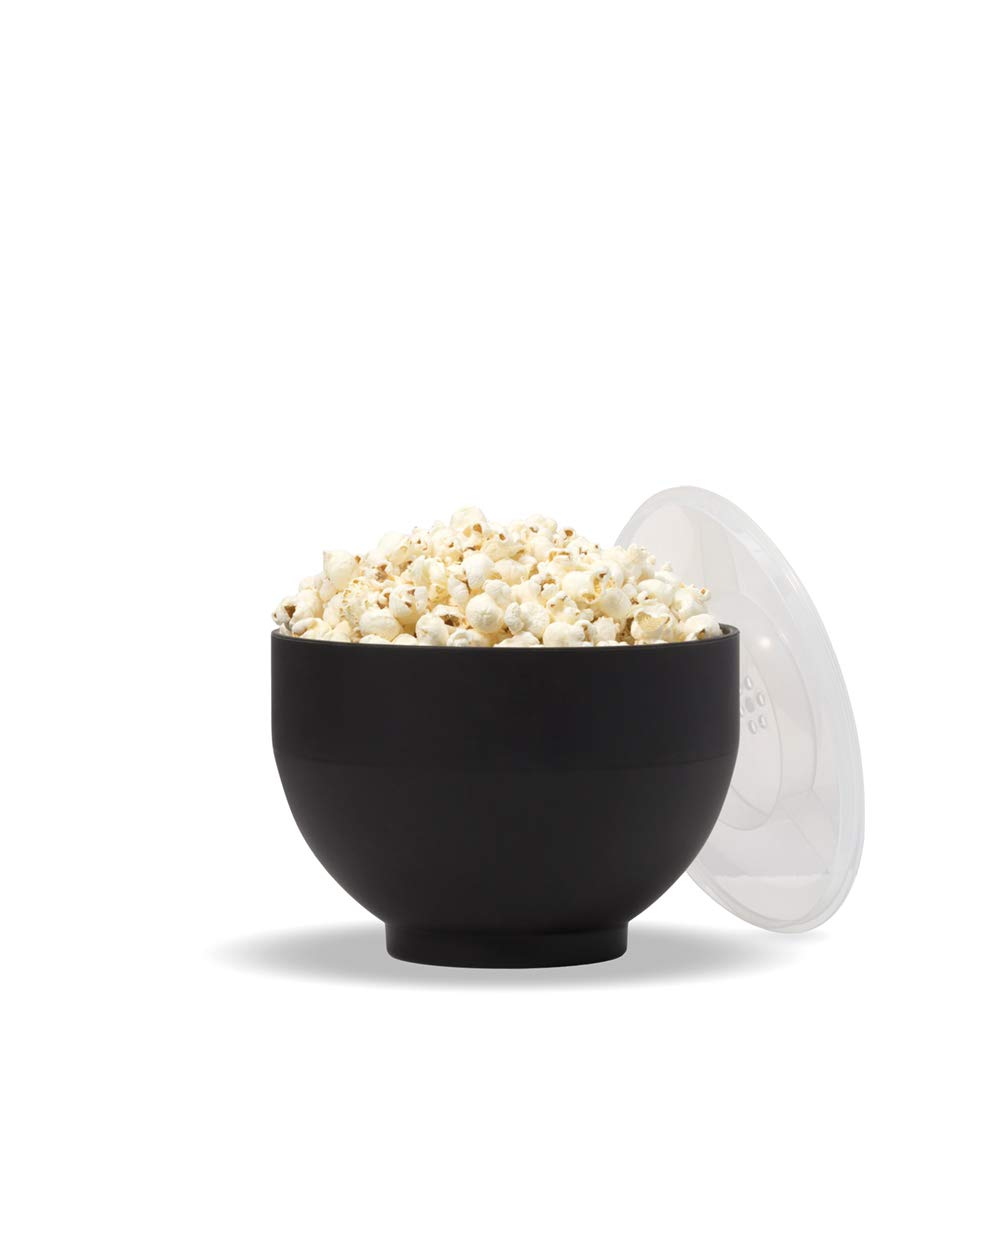 W&P WP-POP-CH Microwave Silicone Popcorn Popper Maker, Collapsible Bowl, BPA, Eco-Friendly, Waste Free, 9.3 Cups, Charcoal by W&P